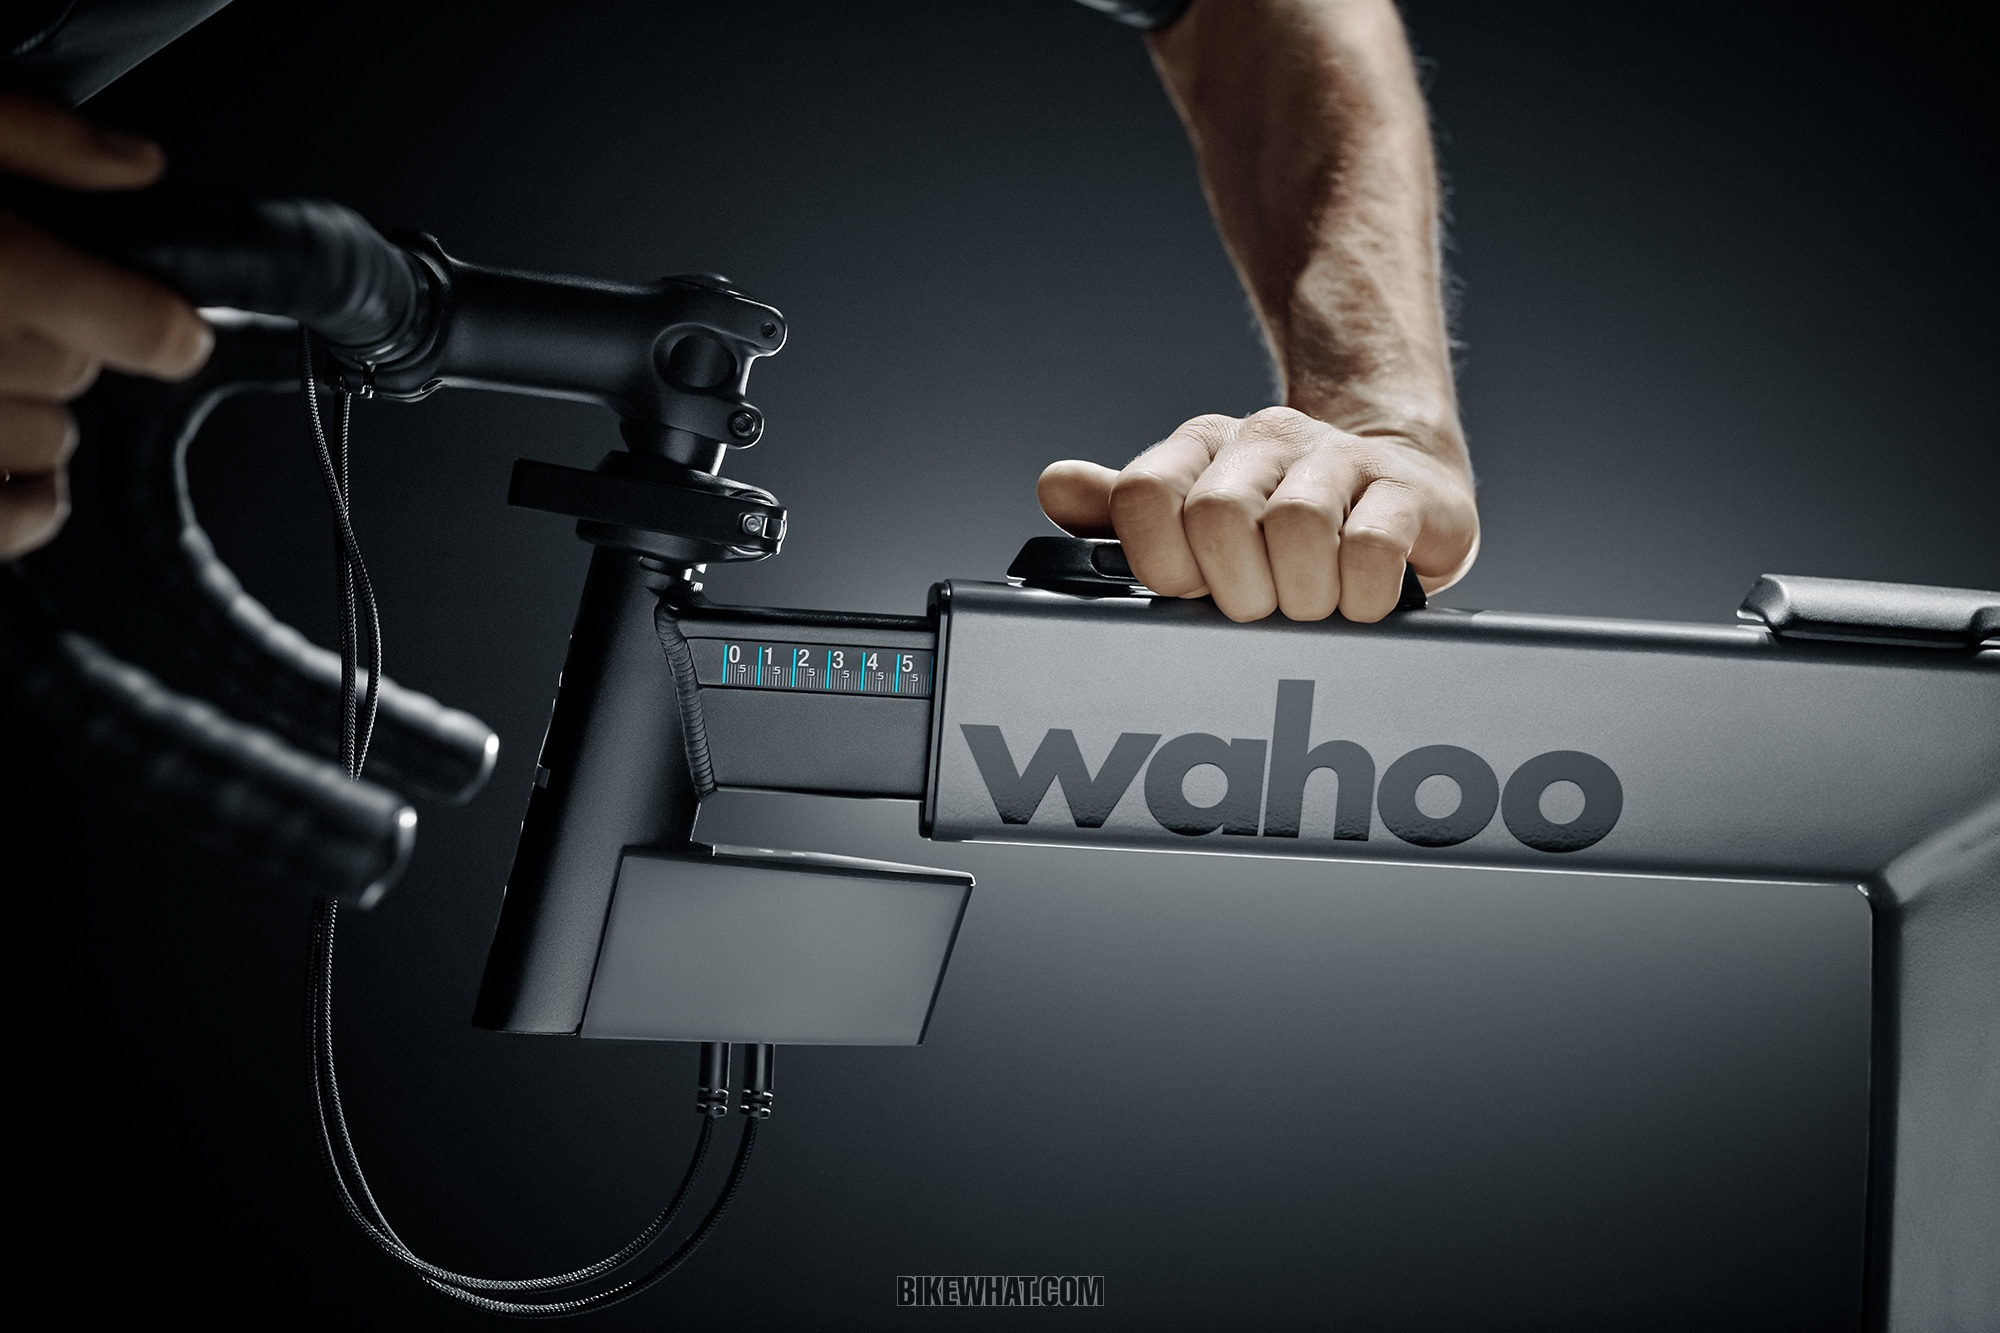 Gear_Wahoo_KICKR BIKE_3.jpg